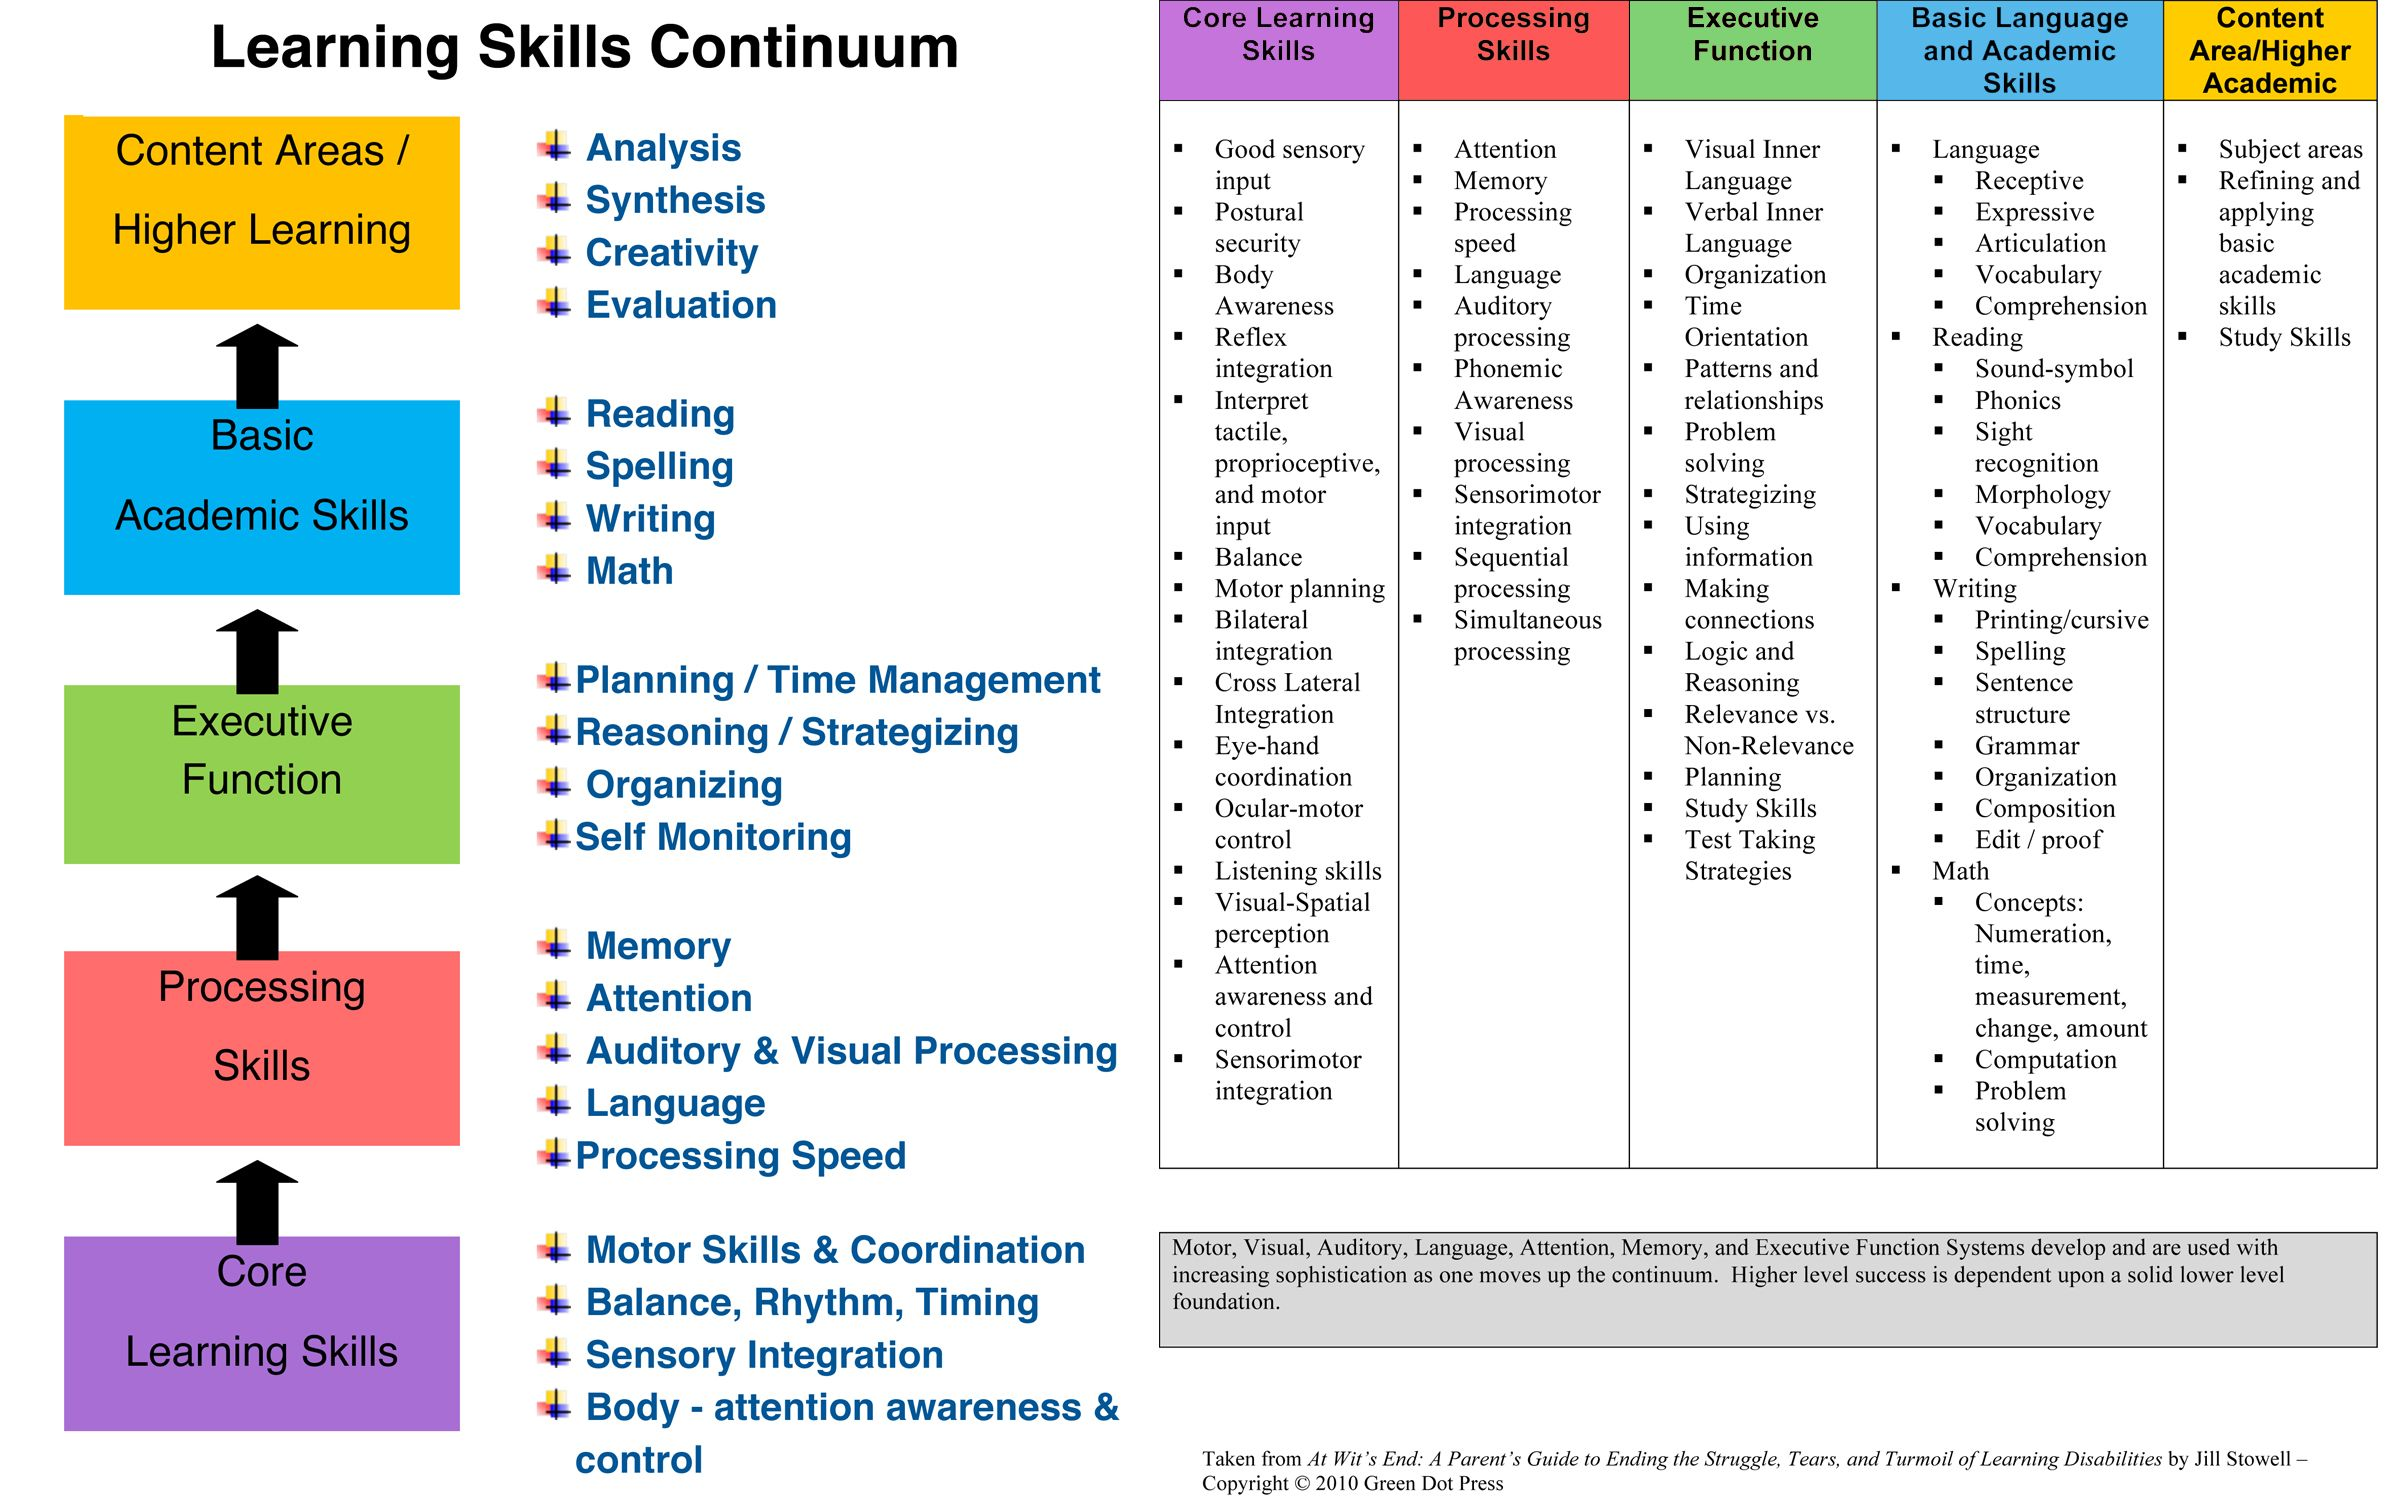 executive functioning skills continuum   Google Search ...